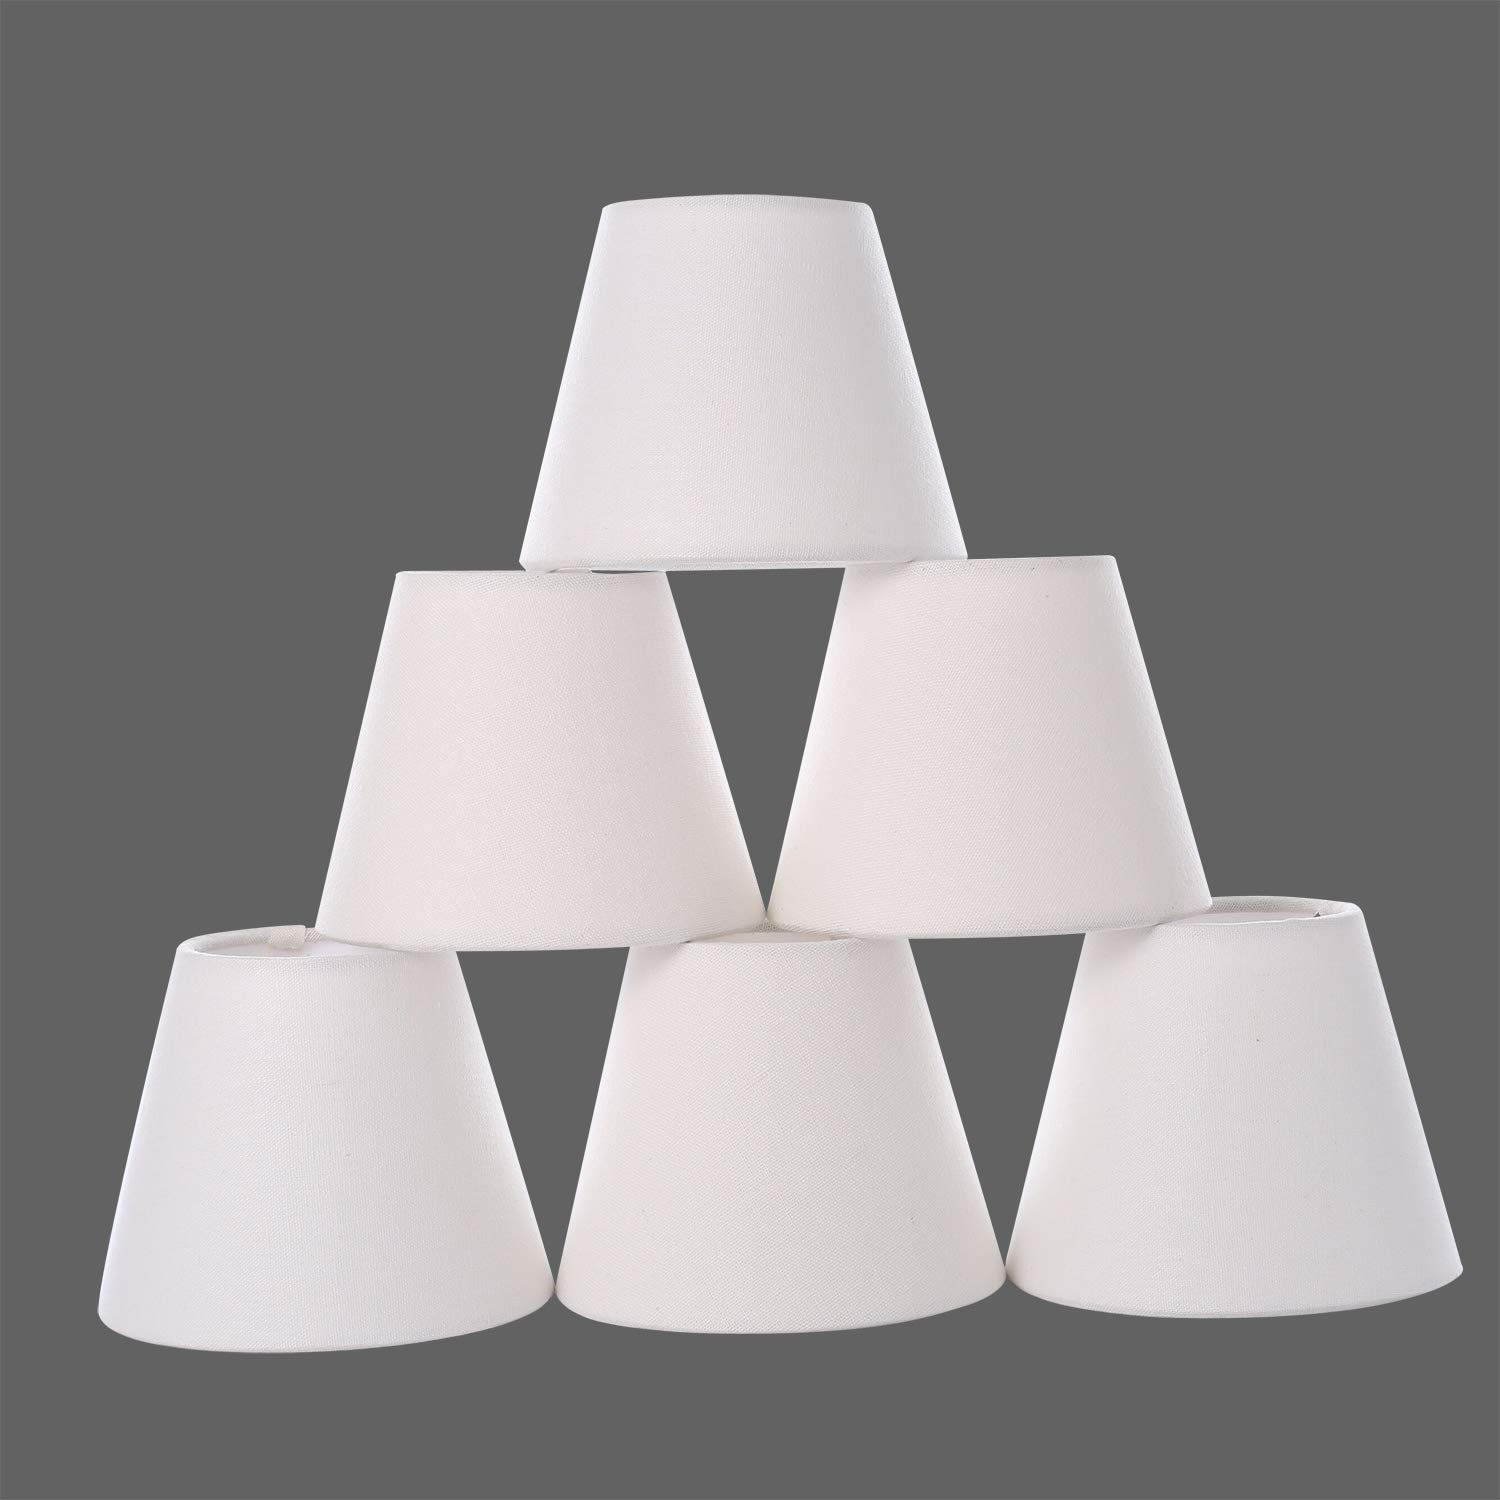 Chandelier Shades Small Lamp Shade Hardback Clip On Shades With White Linen Dia 3 5 Top X 5 Bottom Small Lamp Shades Chandelier Shades Chandelier Light Shade